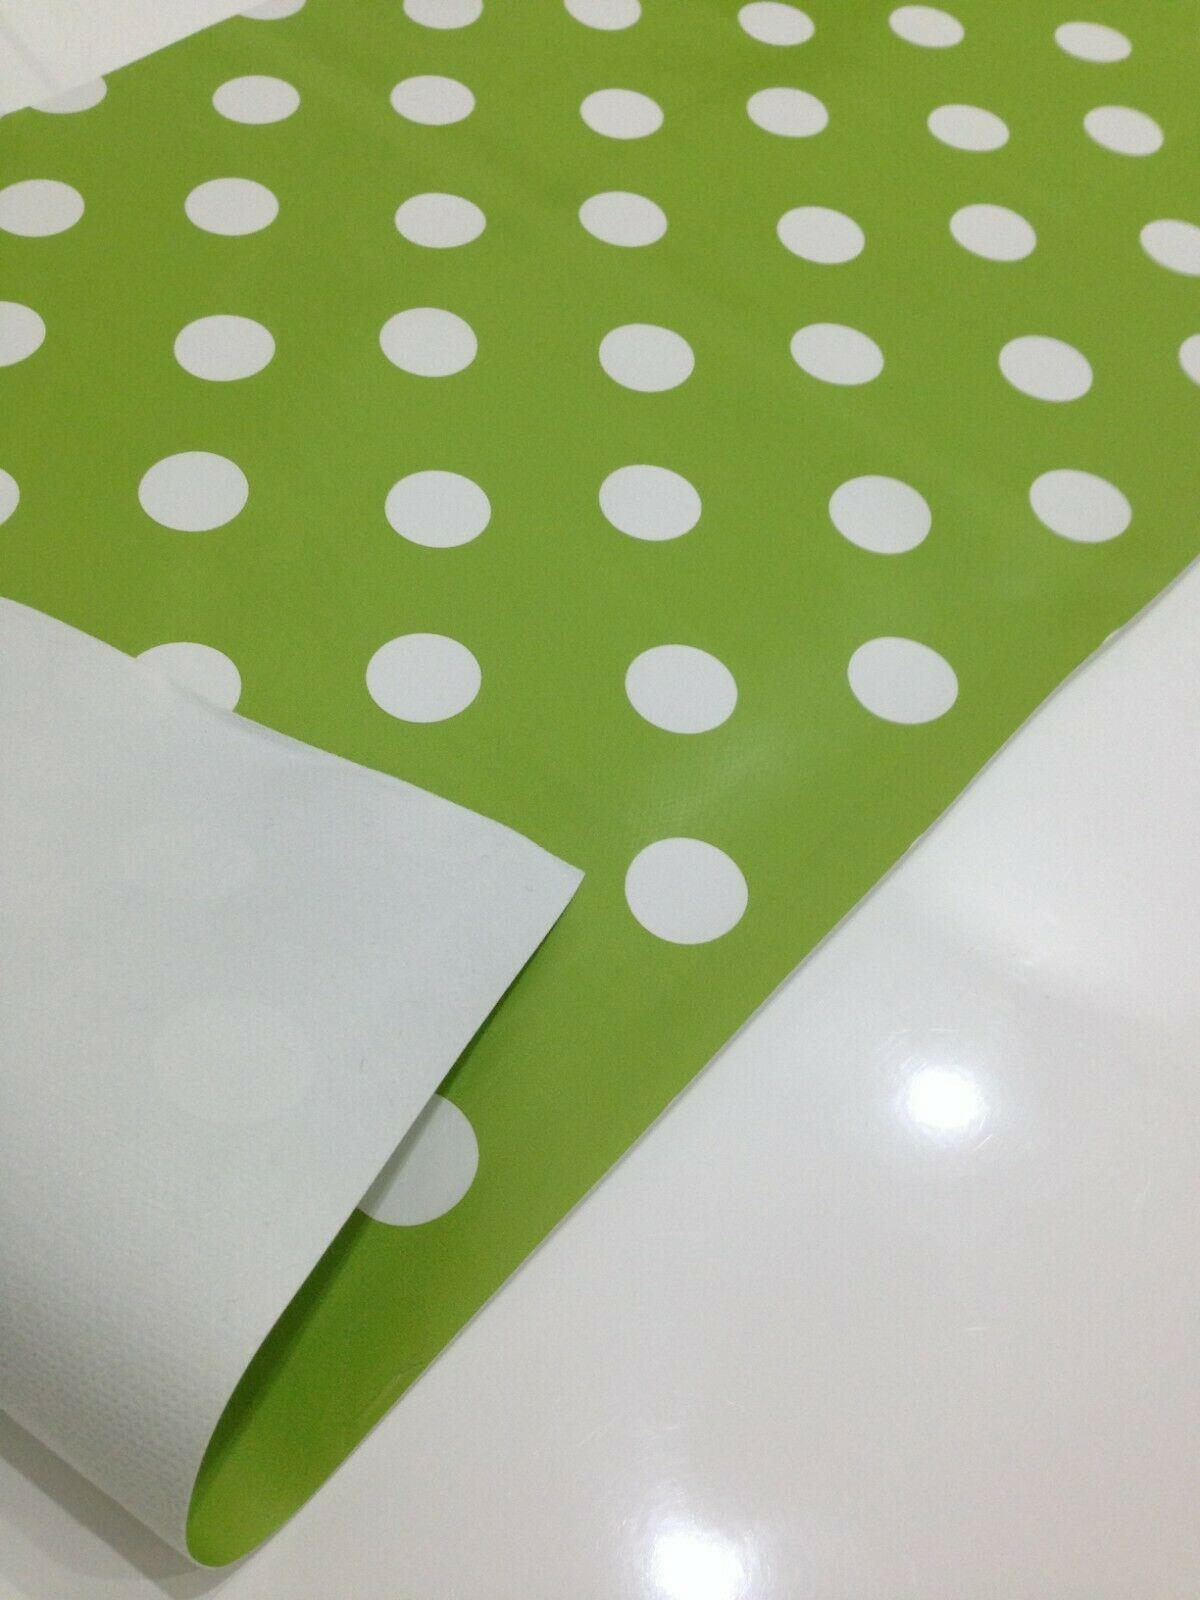 Spotted Wipe clean Tablecloth oilcloth vinyl PVC Spot polka dot 140cm wide M40